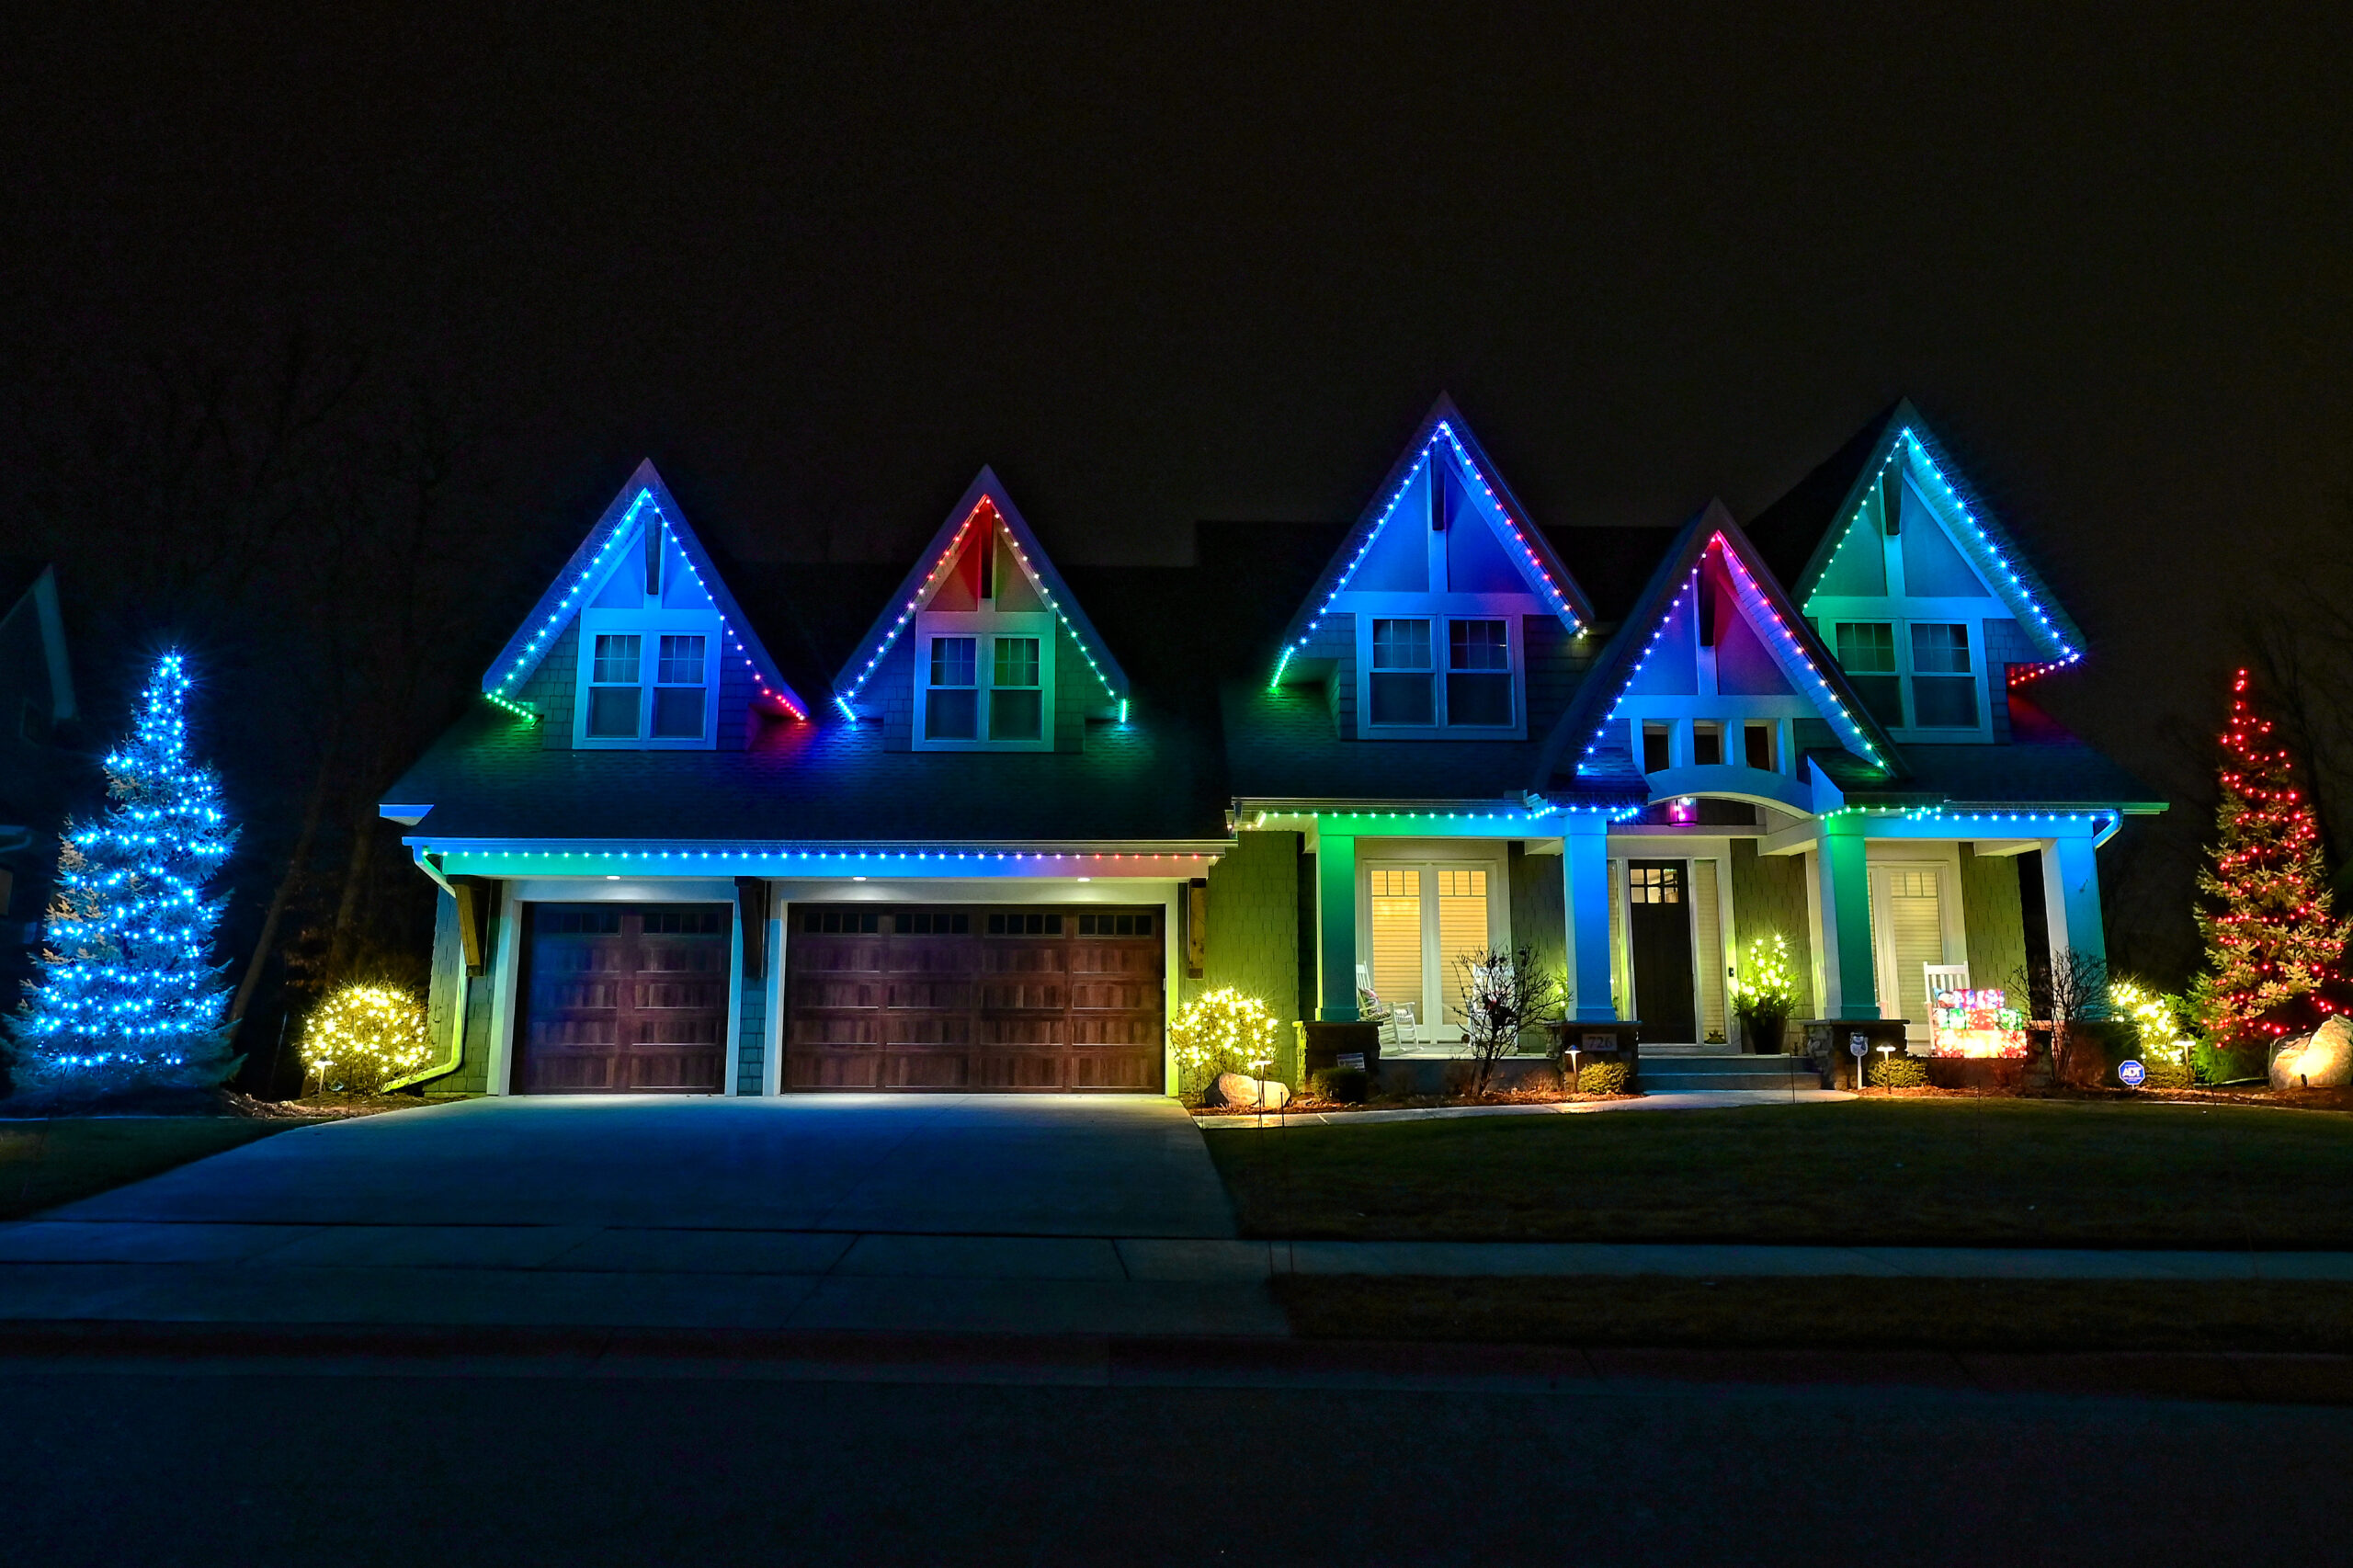 Central Florida Trimlight lighting permanent outdoor programmable lighting system installed on a house.